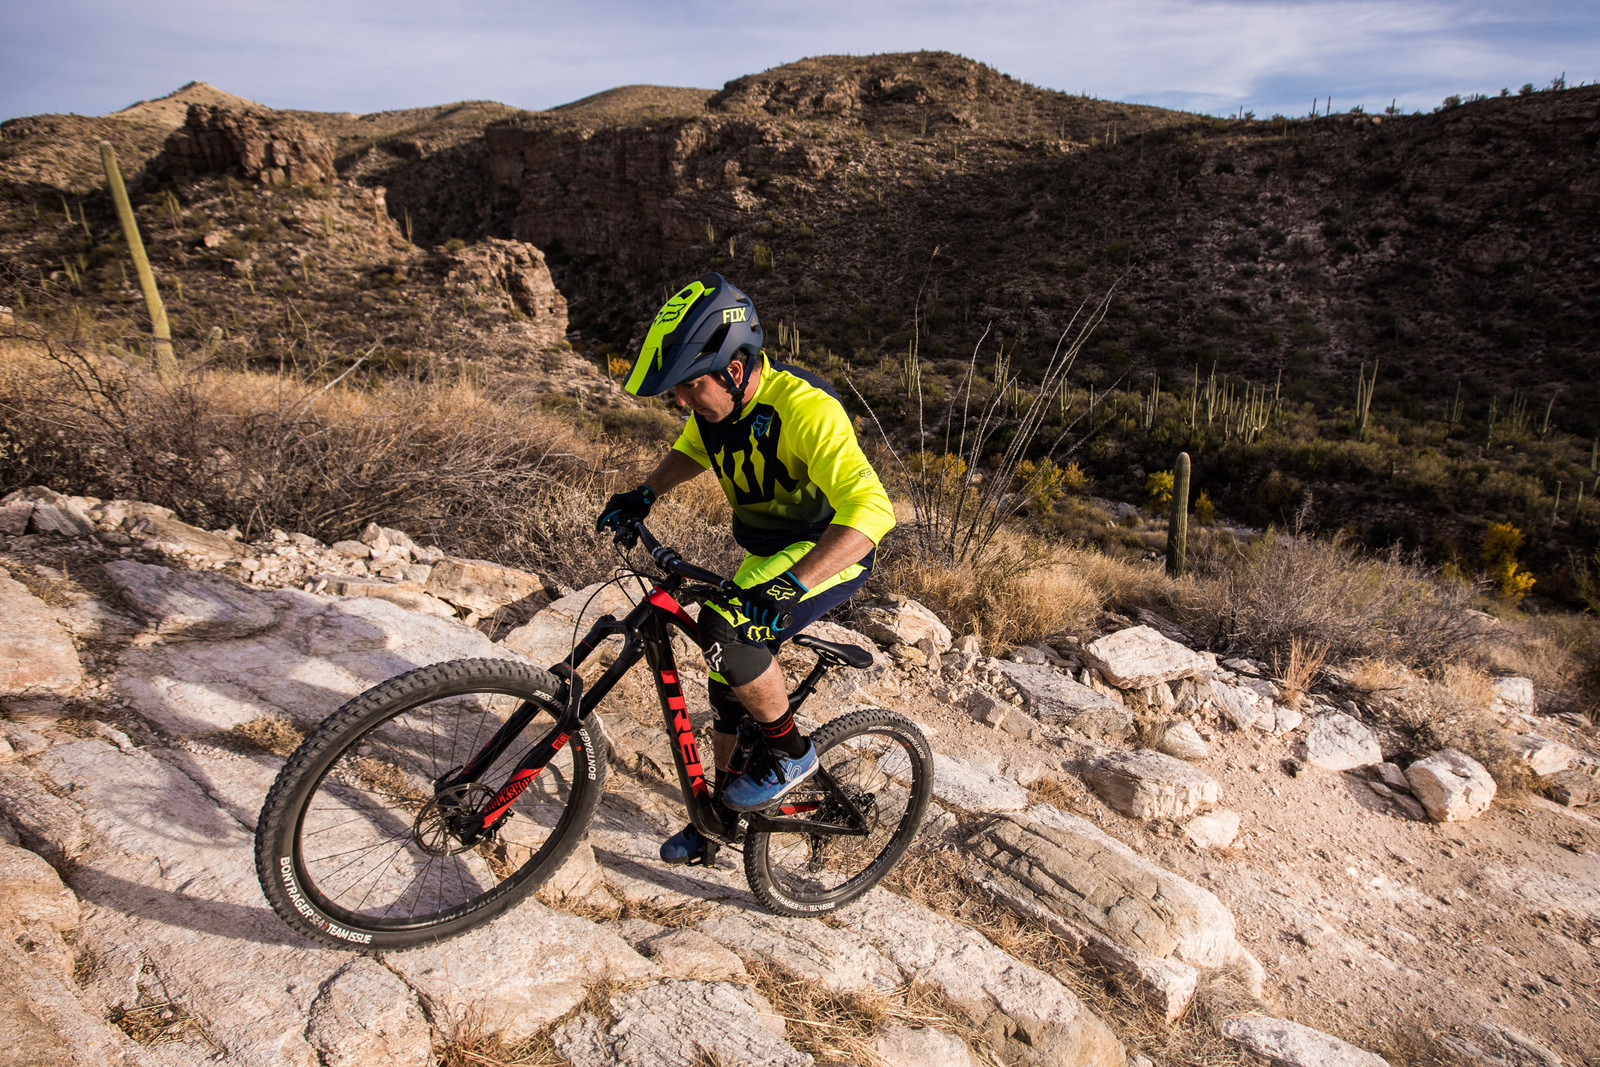 Trek Remedy 9.9 Race Shop Limited - 2017 Vital MTB Test Sessions - Trek Remedy 9.9 Race Shop Limited - 2017 Vital MTB Test Sessions - Mountain Biking Pictures - Vital MTB